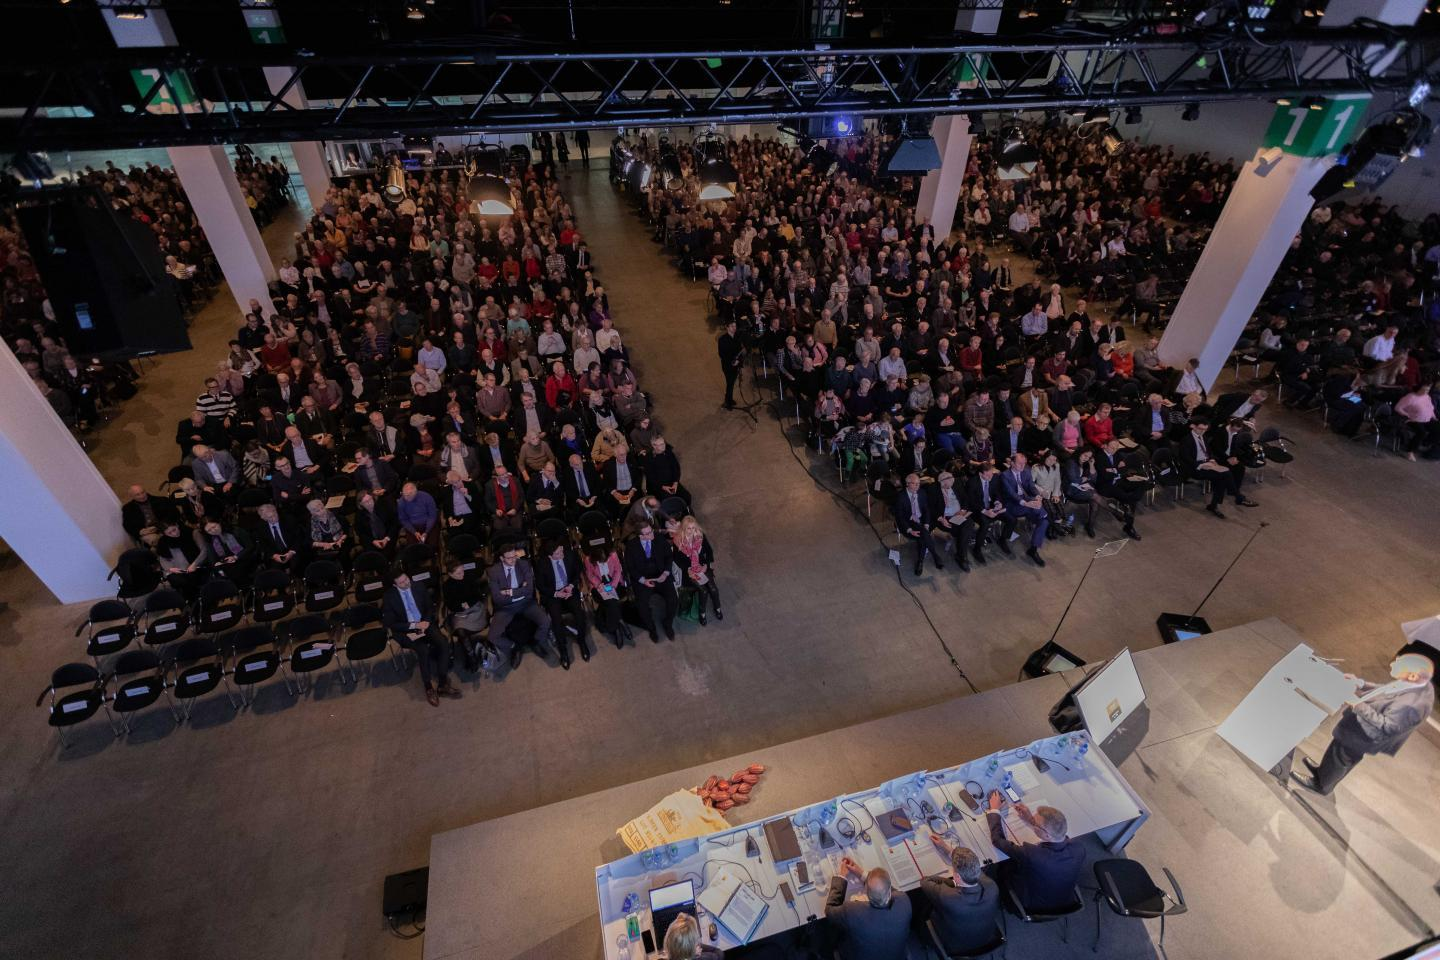 Annual General Meeting 2018 of Barry Callebaut AG